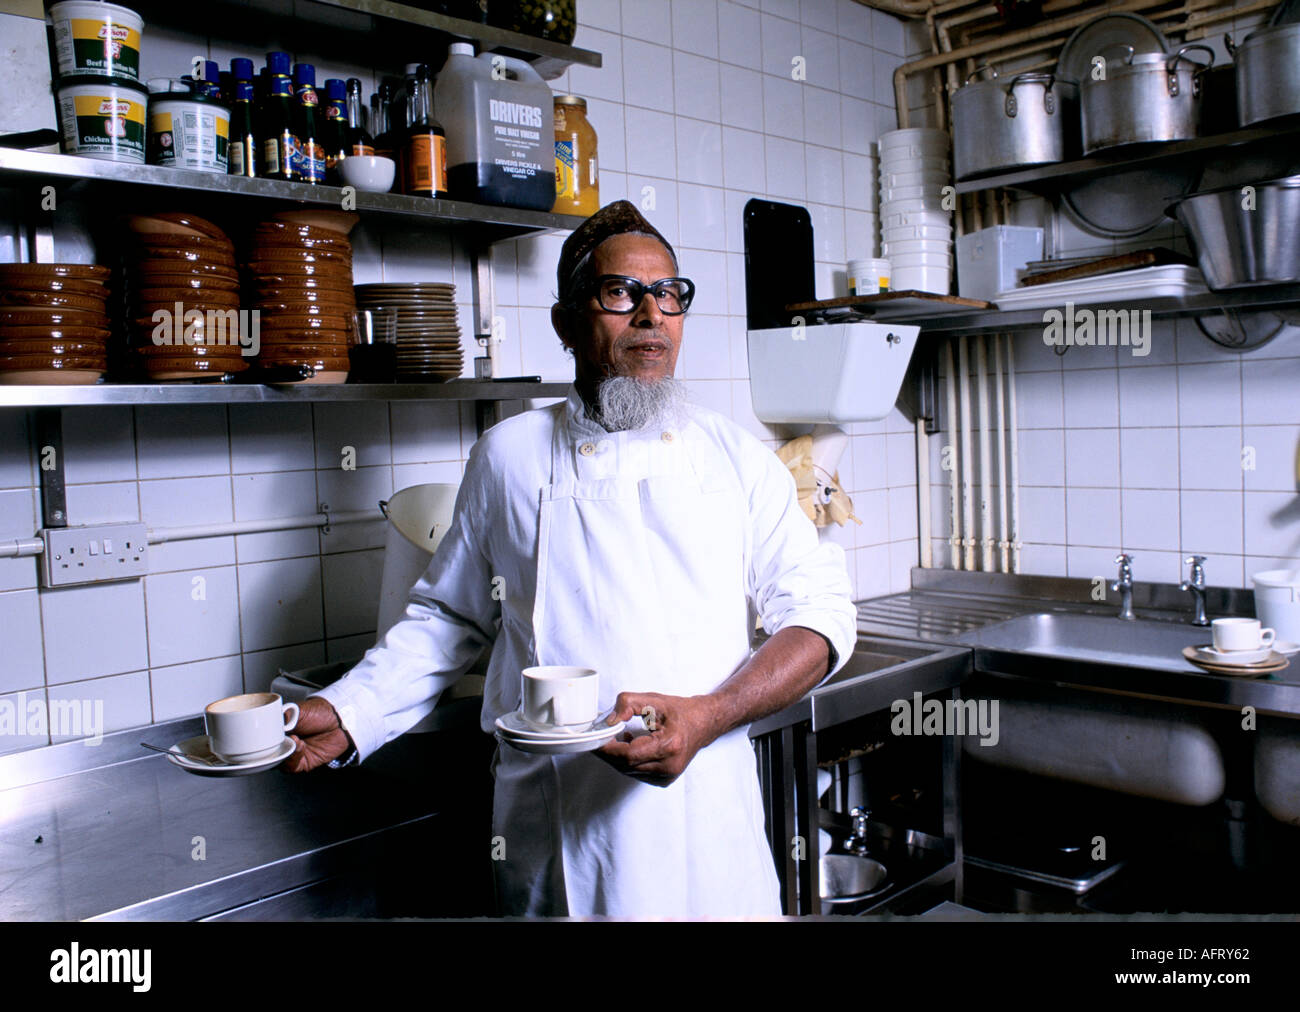 AABDUL KIAM. HOTEL KITCHEN PORTER   LONDON - Stock Image